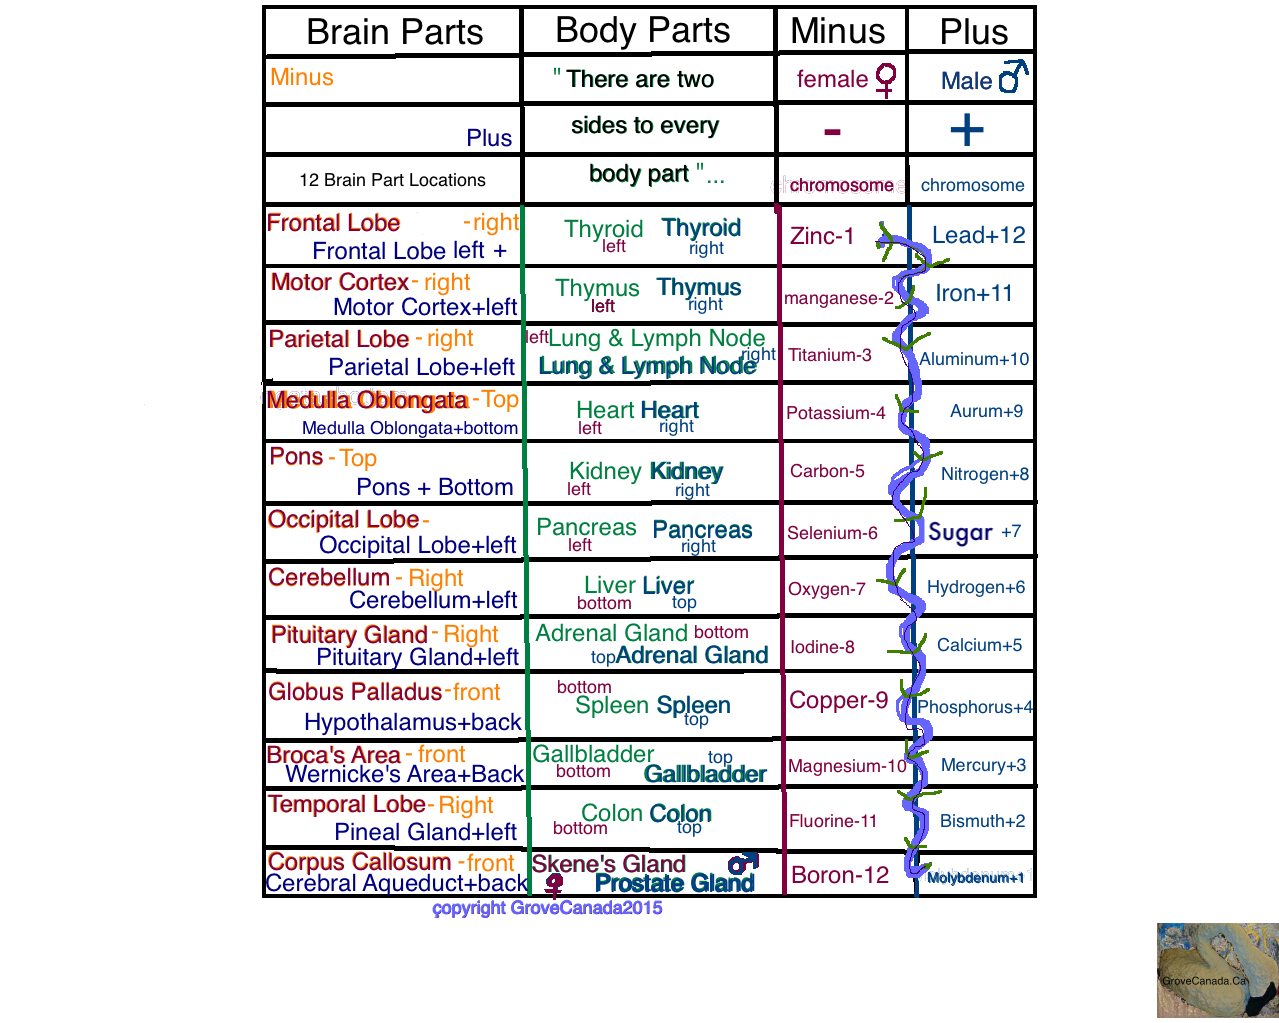 Brain & Body Part Charts together